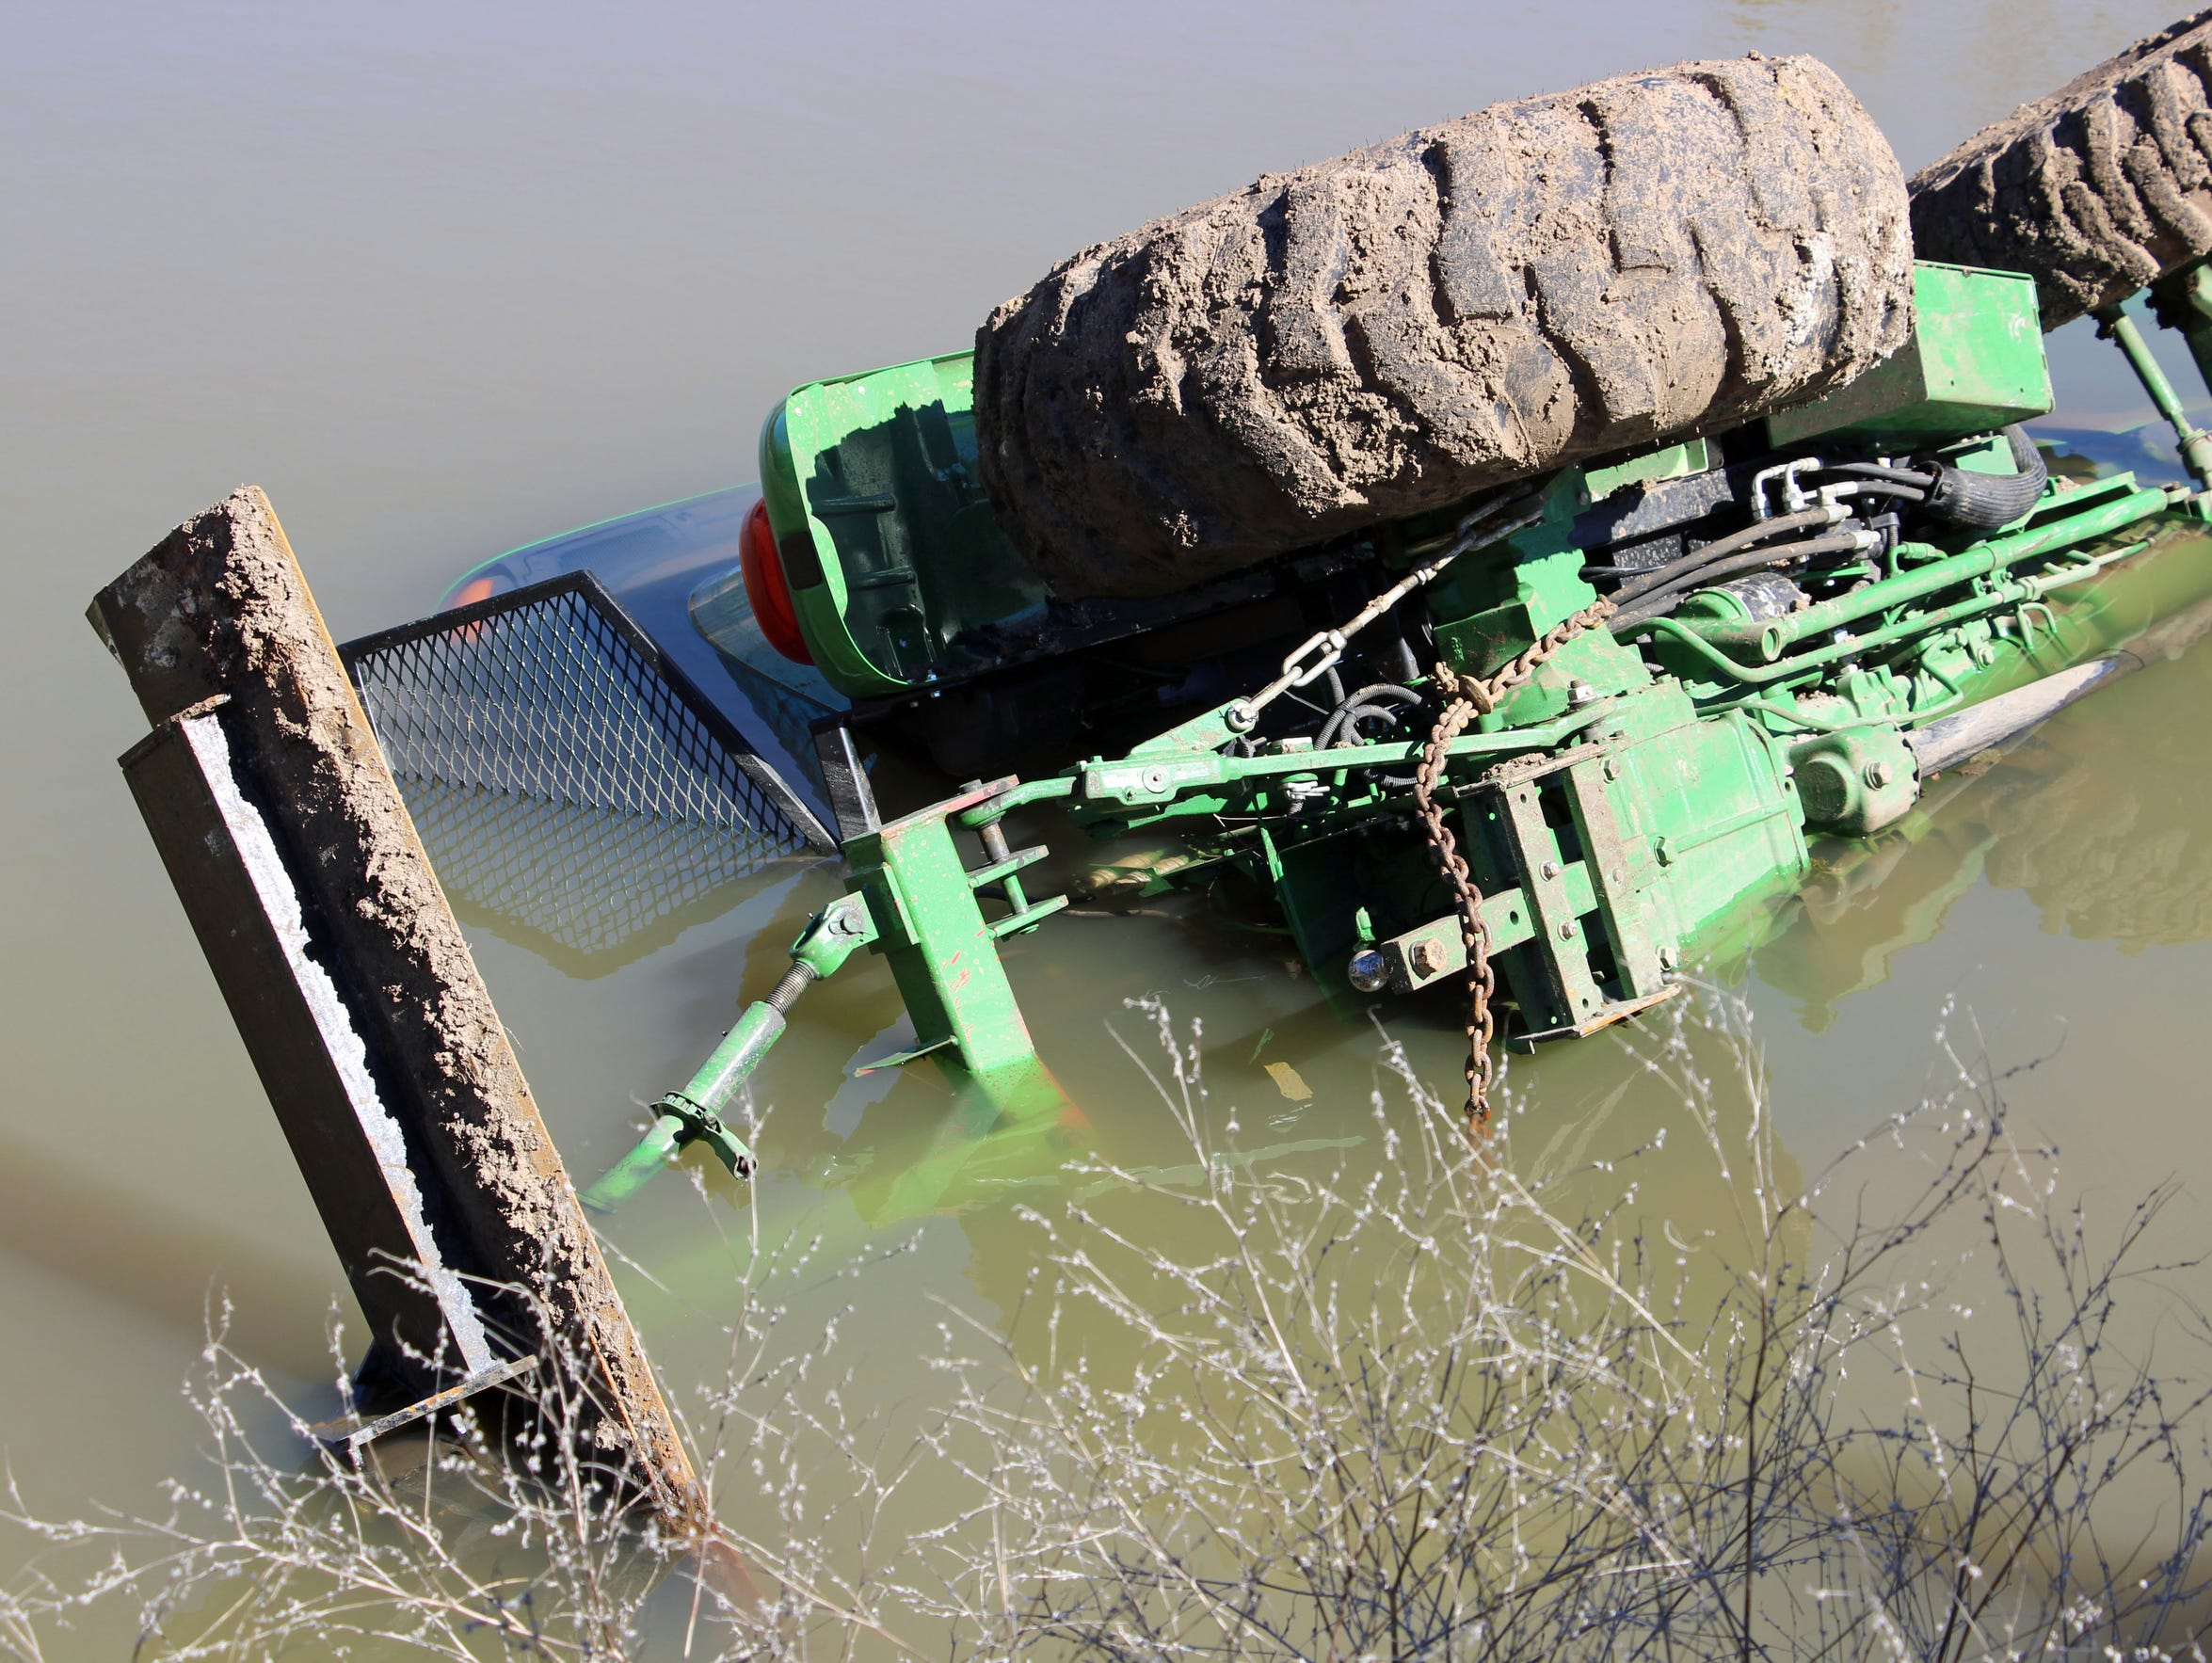 A picture of the tractor a day later shows how far